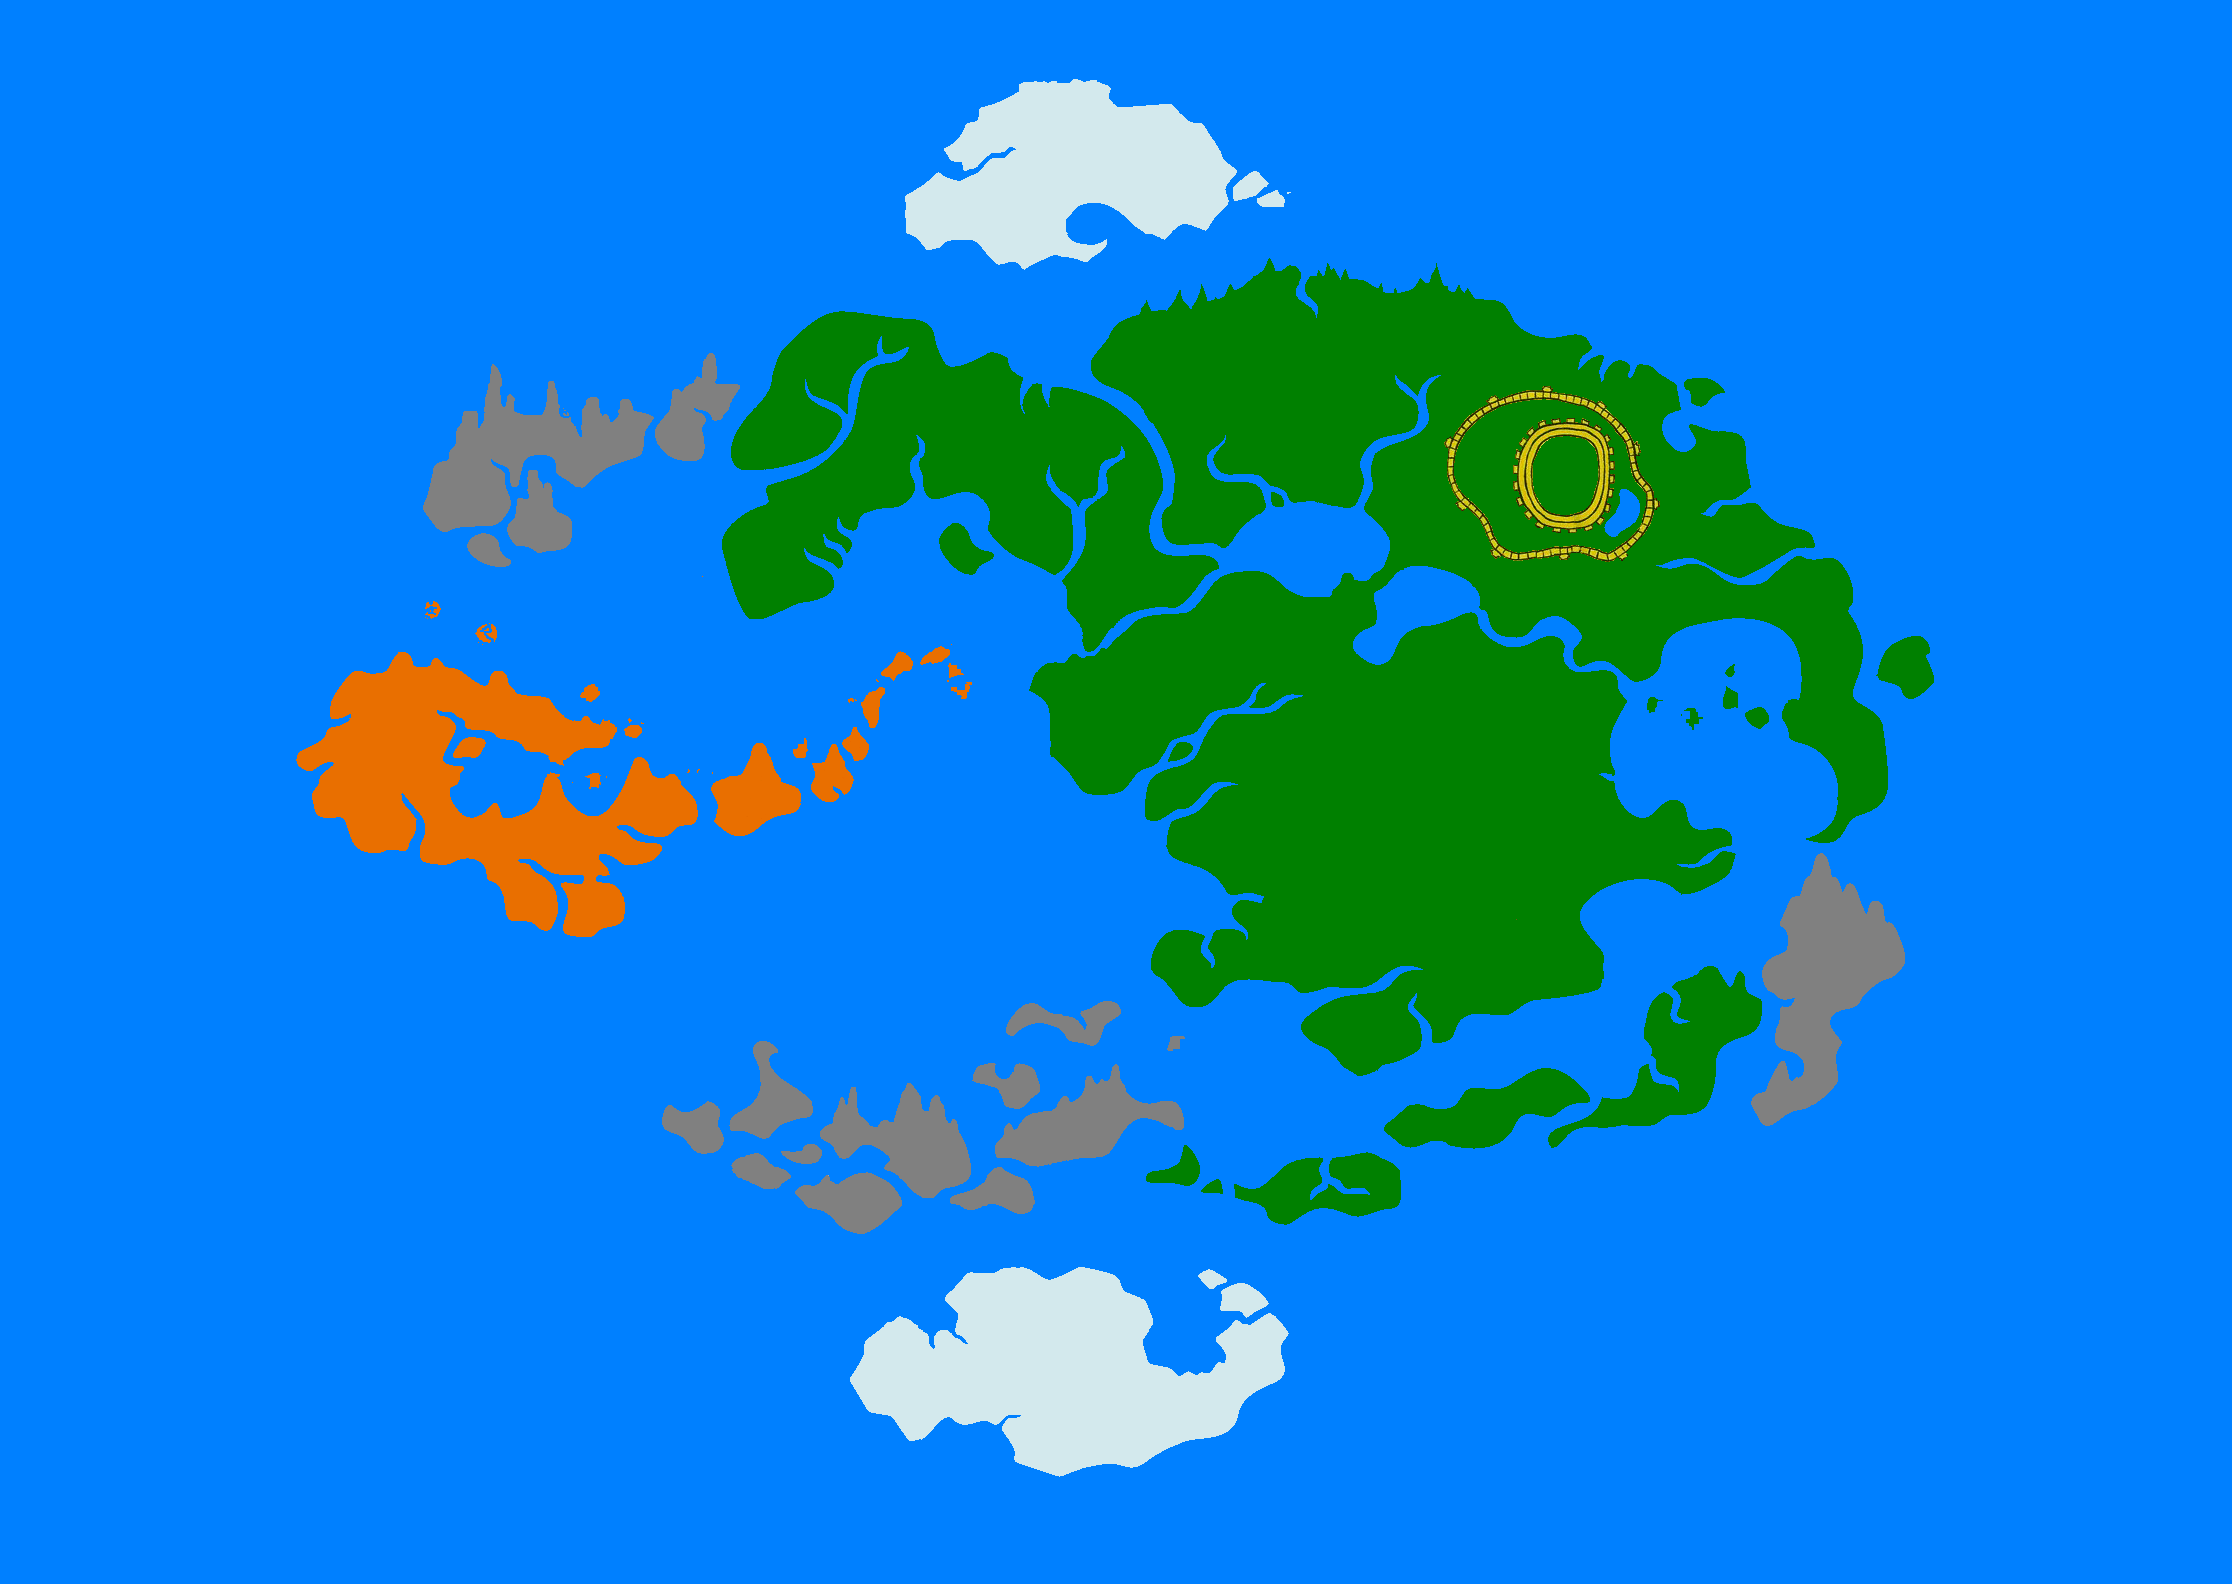 Avatar The Last Airbender Map By 33k7 On DeviantArt Wallpaper